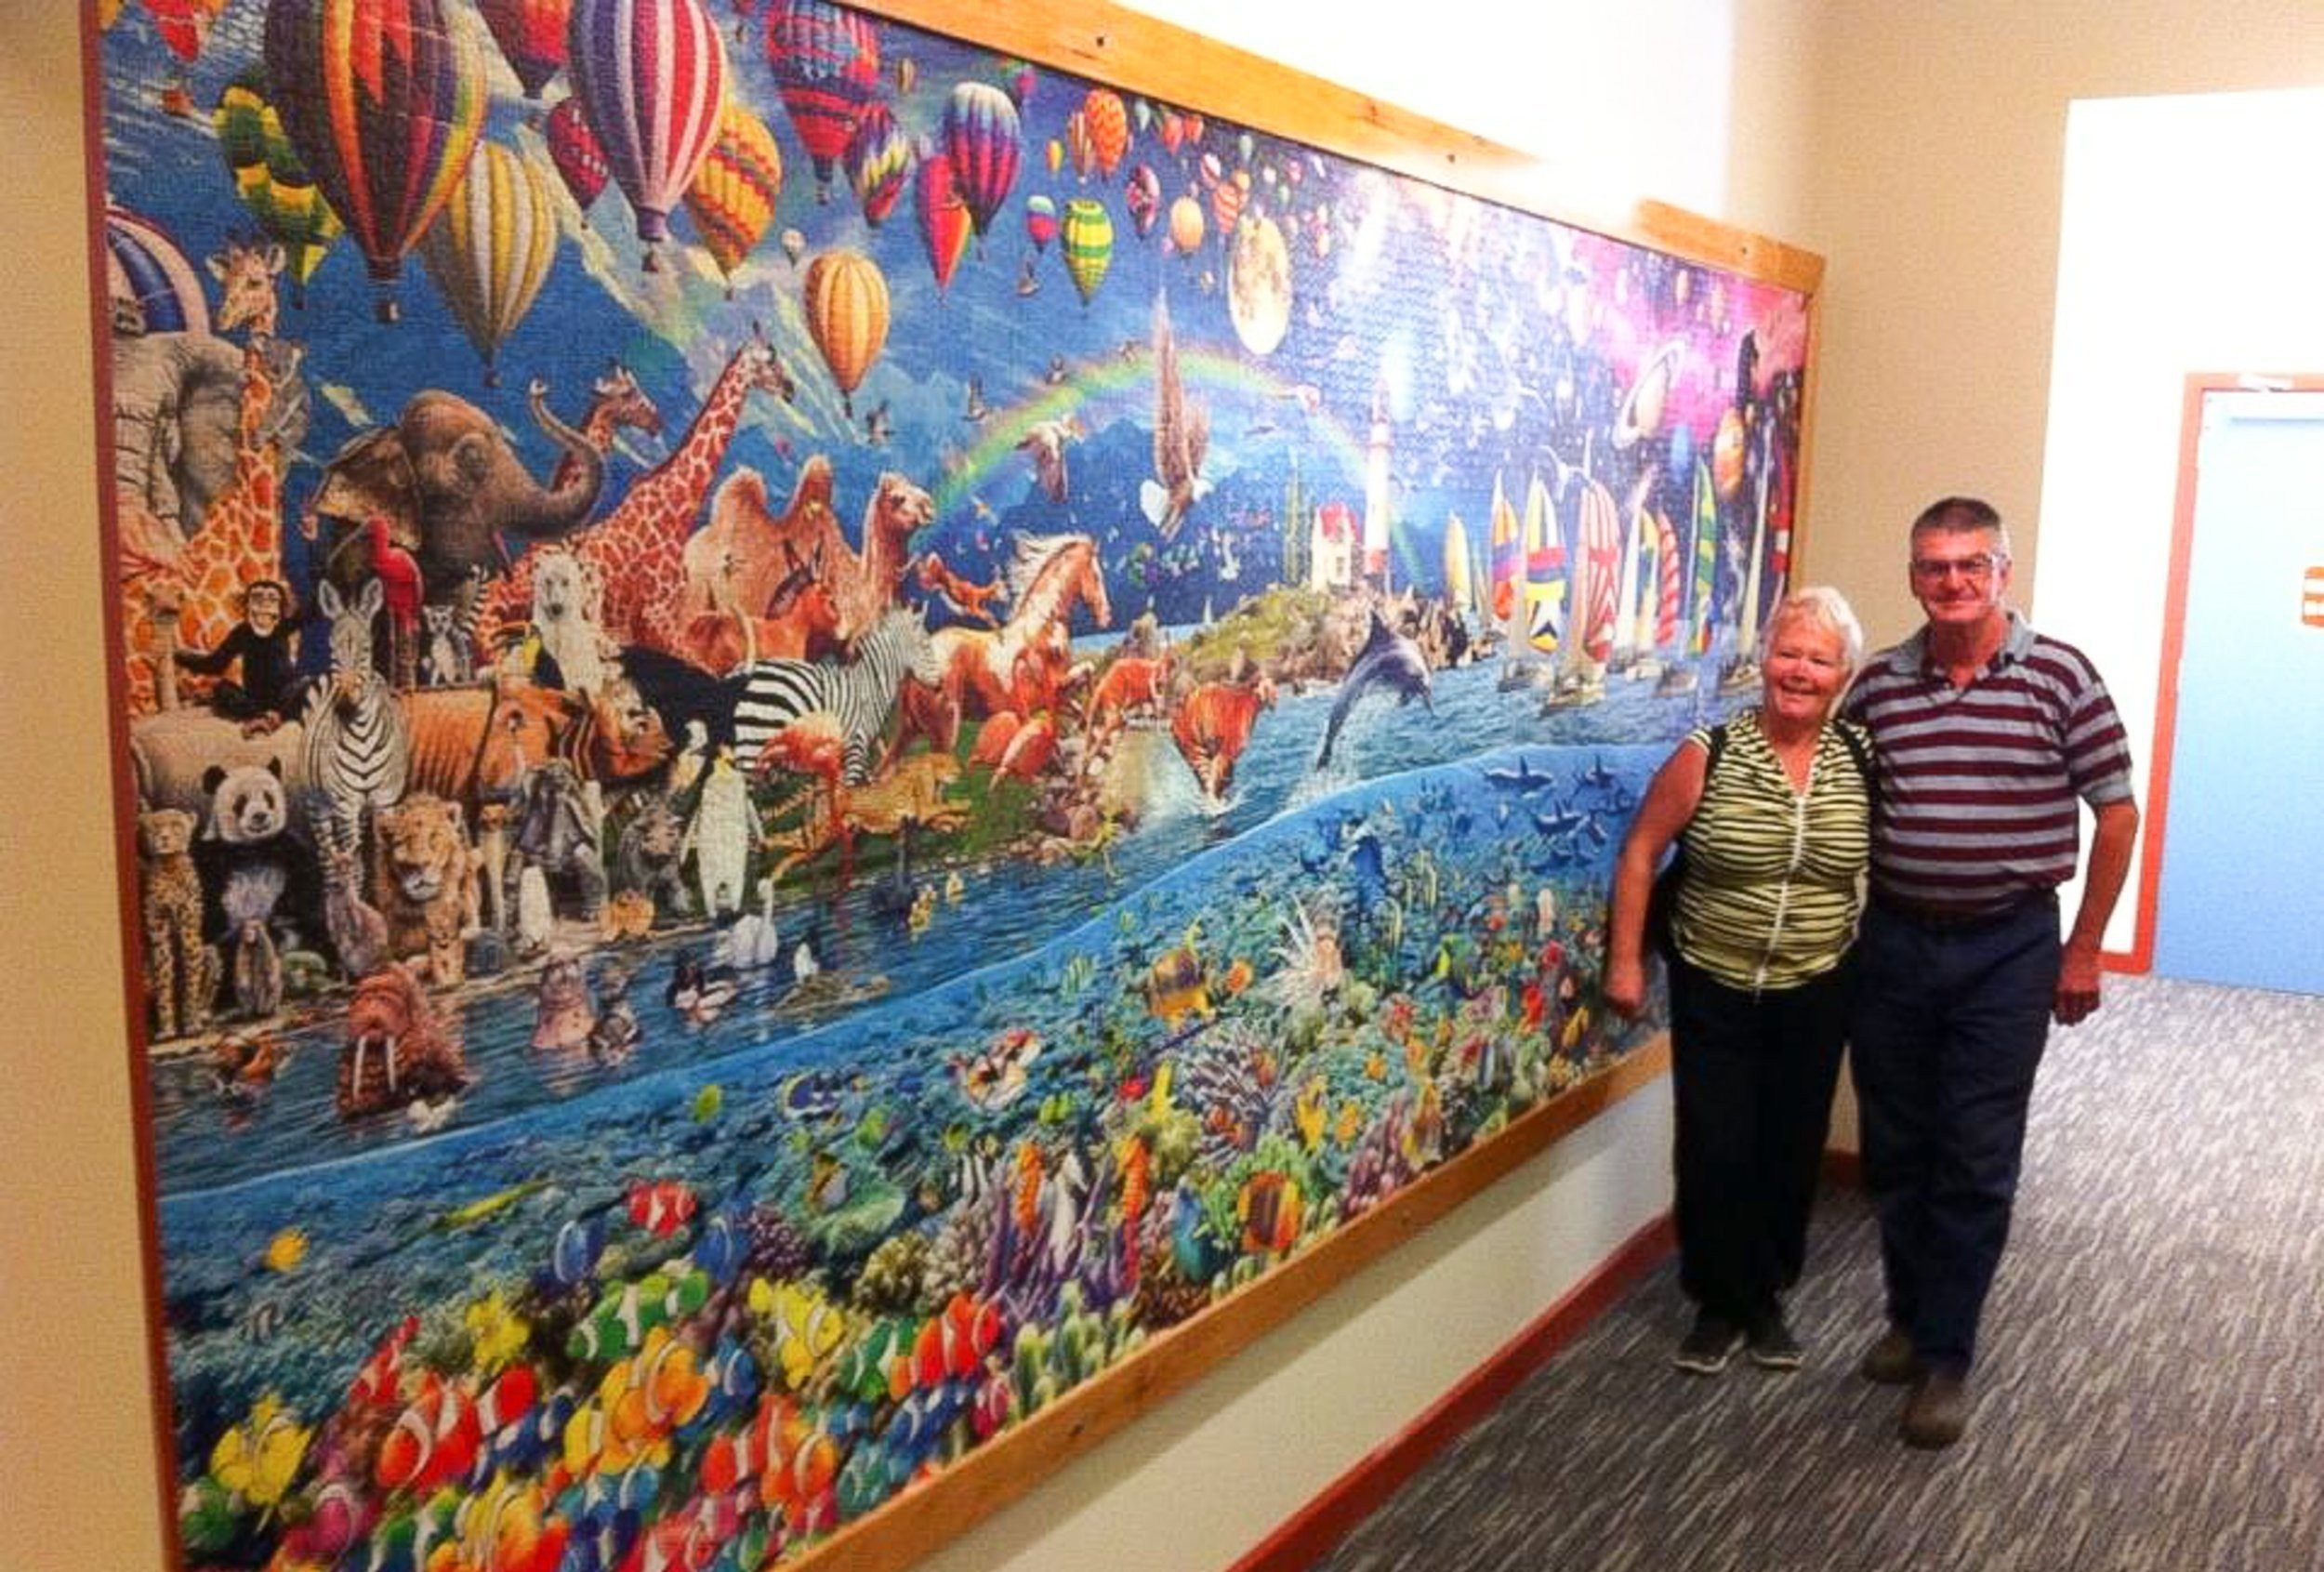 Grandma completes two of the world's largest jigsaw puzzles